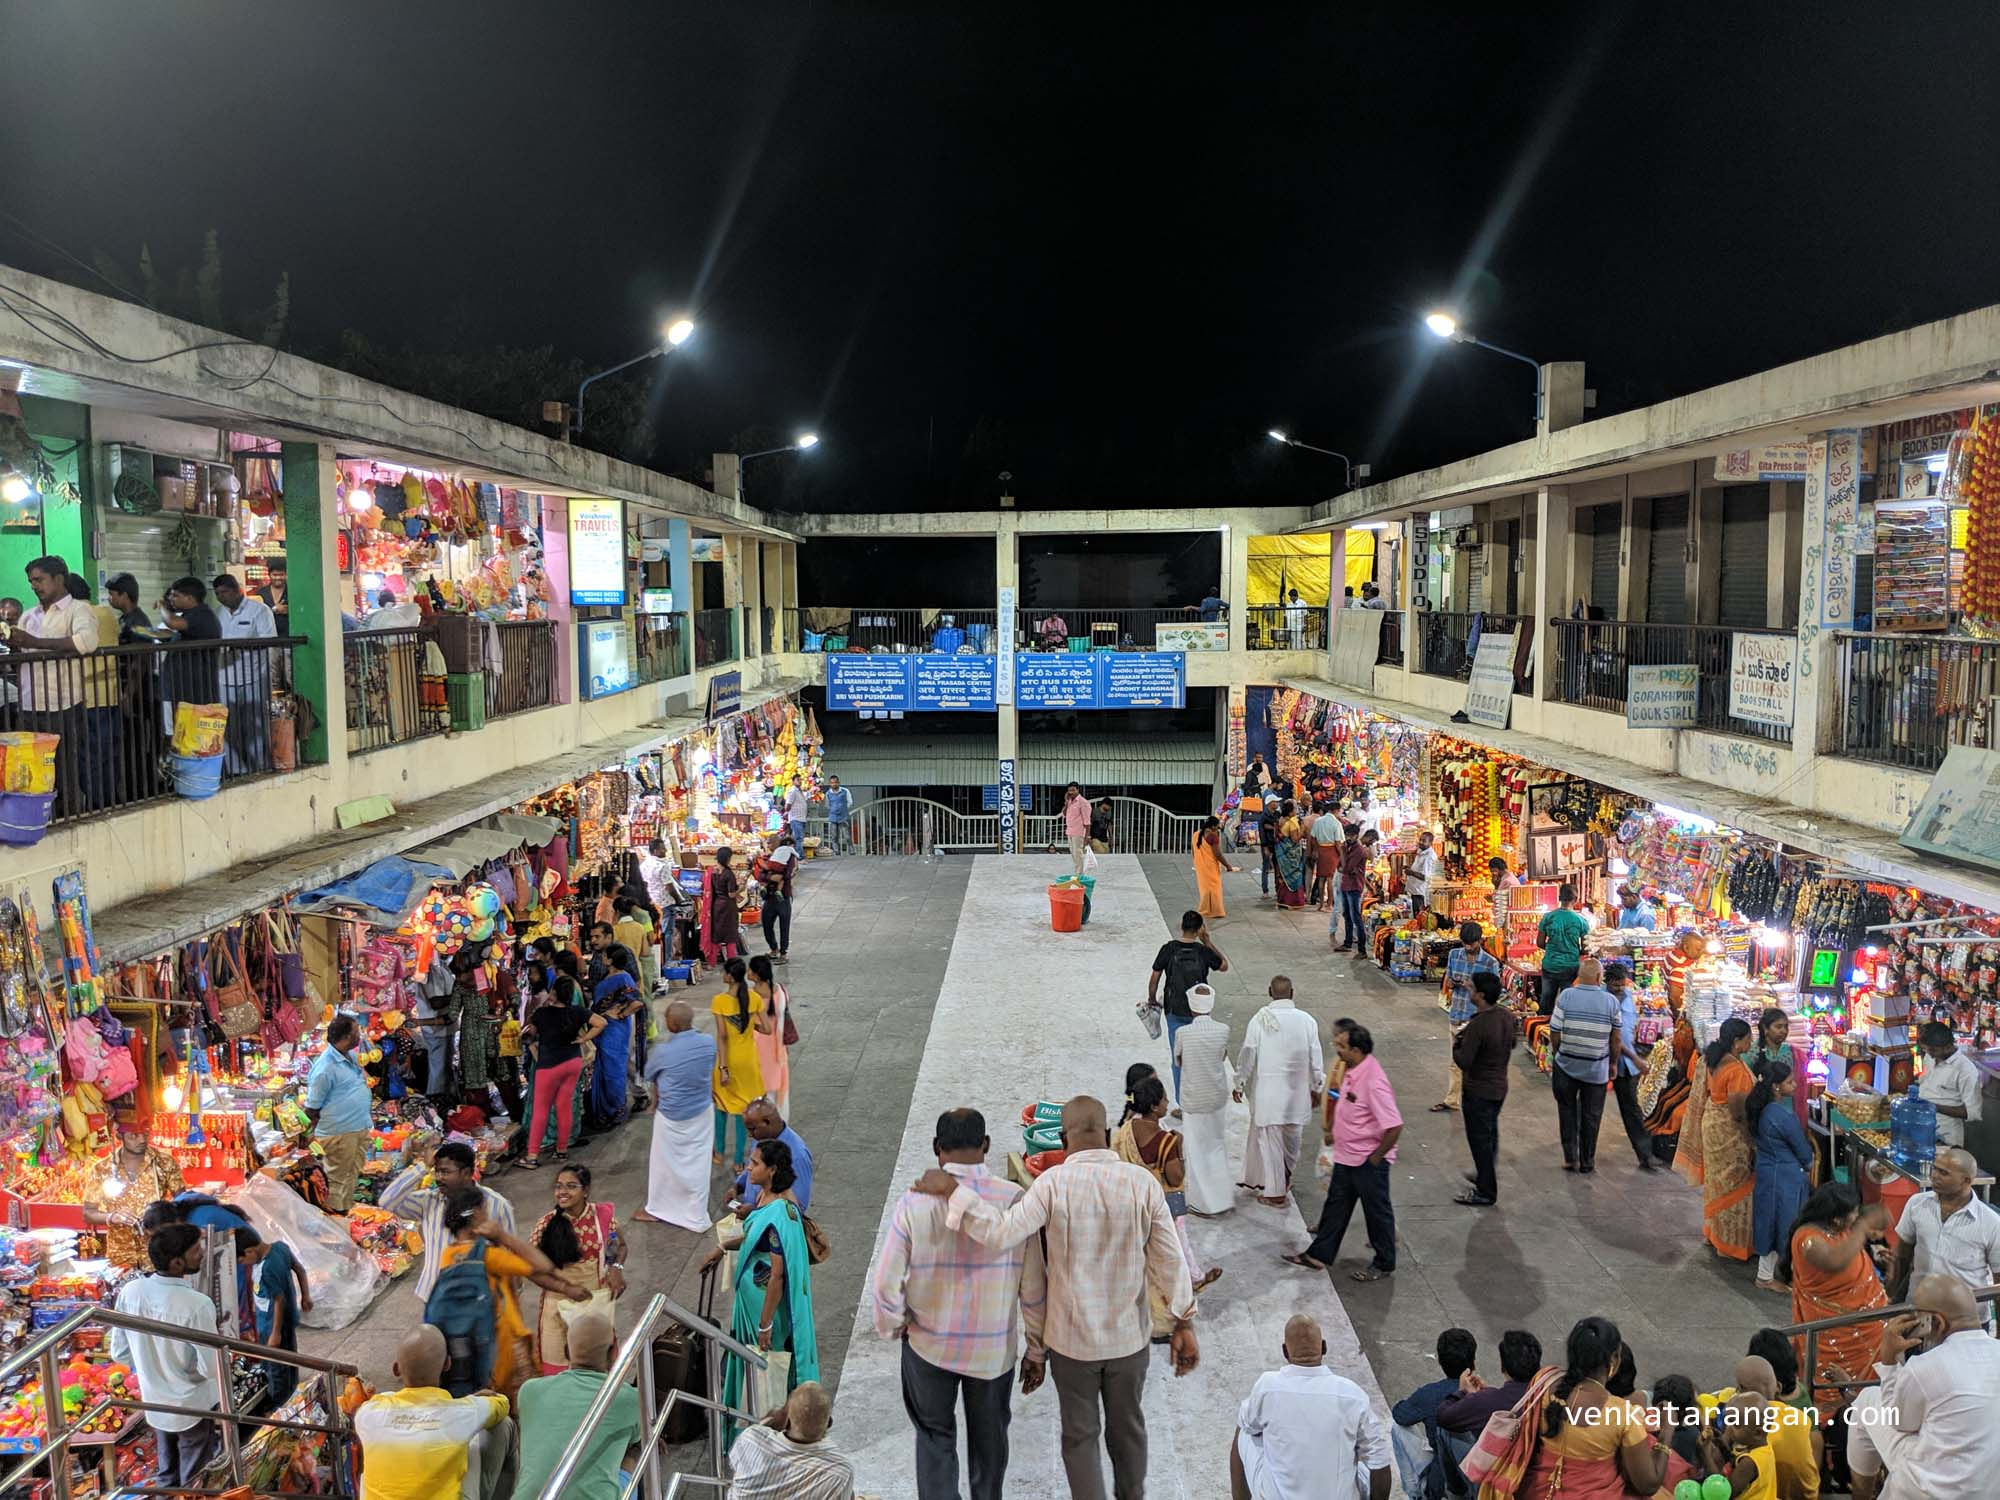 A view of a shopping area - Every pilgrimage is an occasion to shop as well for Indians and Tirumala is no exception